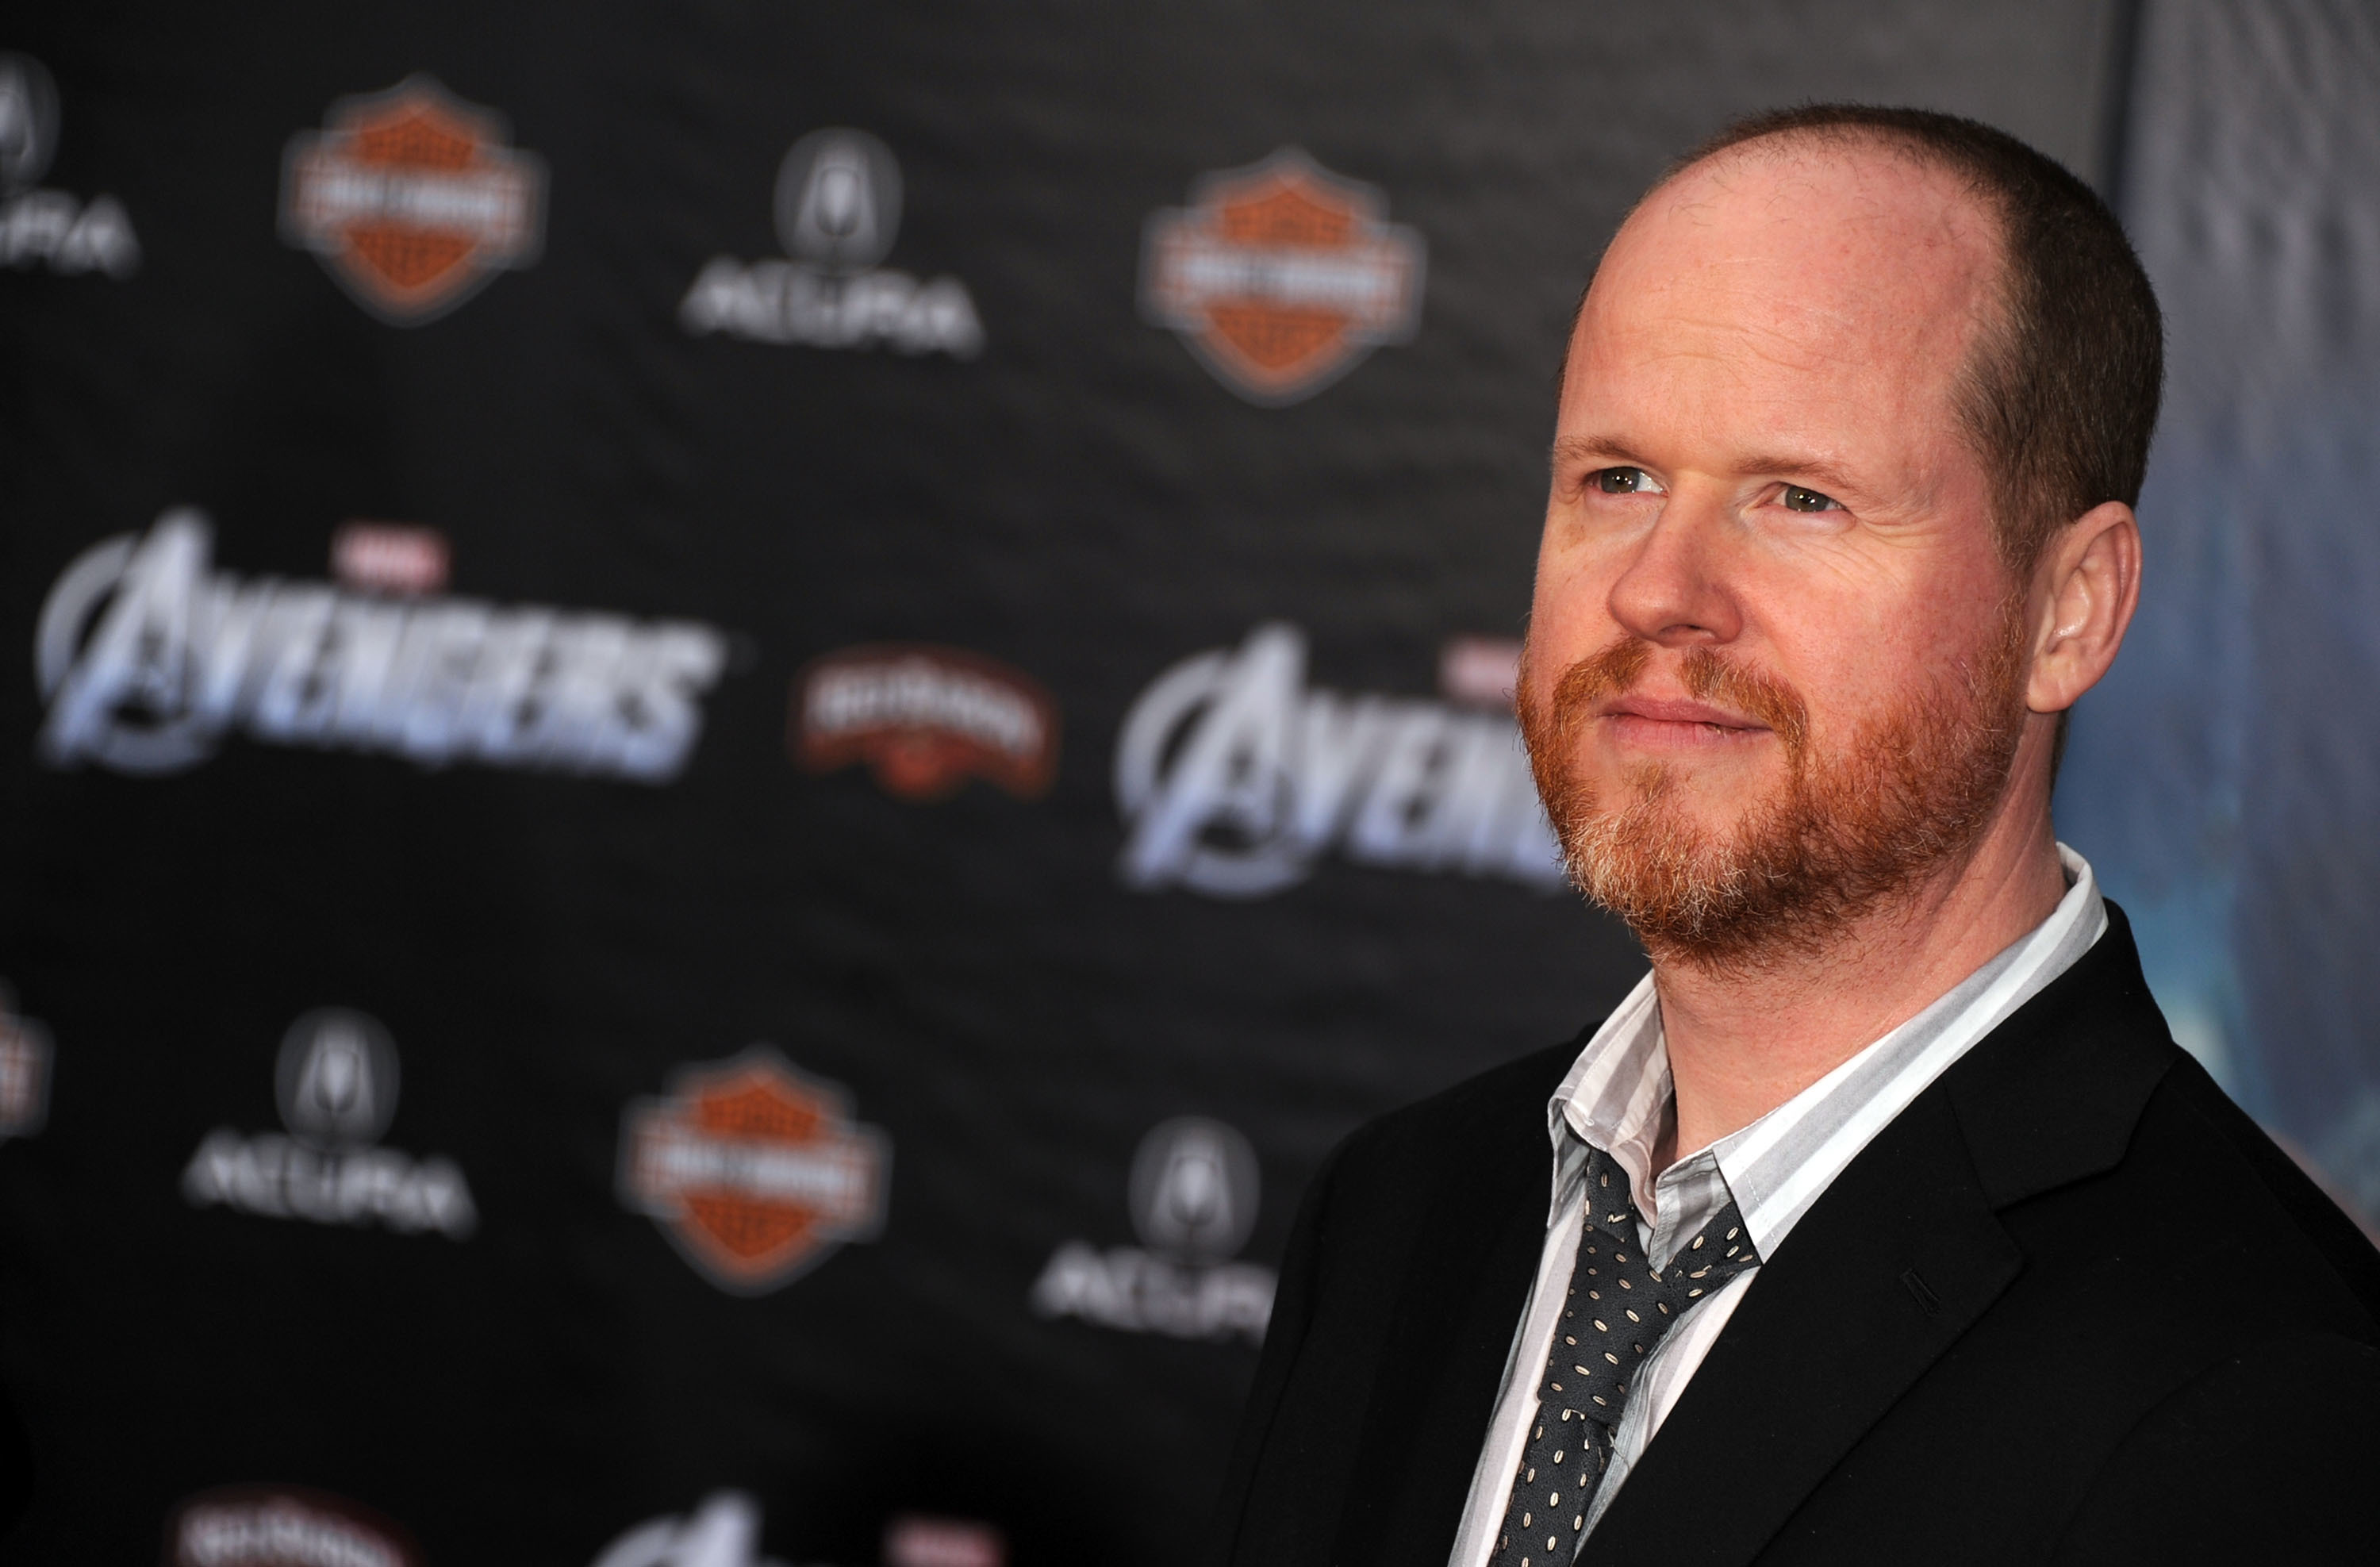 Joss Whedon to Write, Direct Batgirl DC Extended Universe Movie